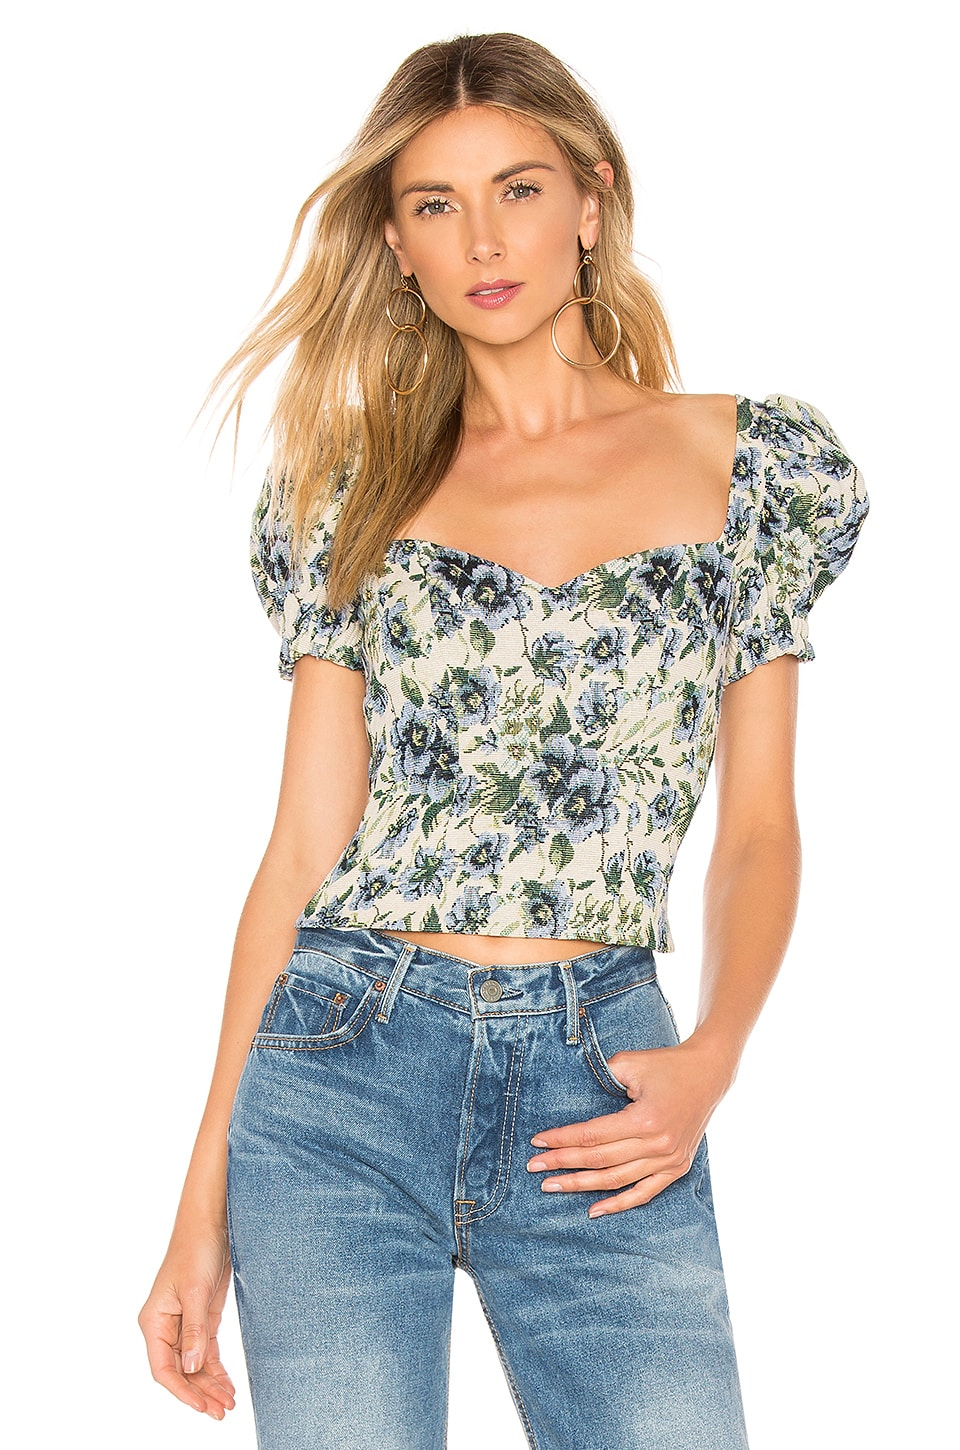 MAJORELLE Angelia Top in Blue Multi